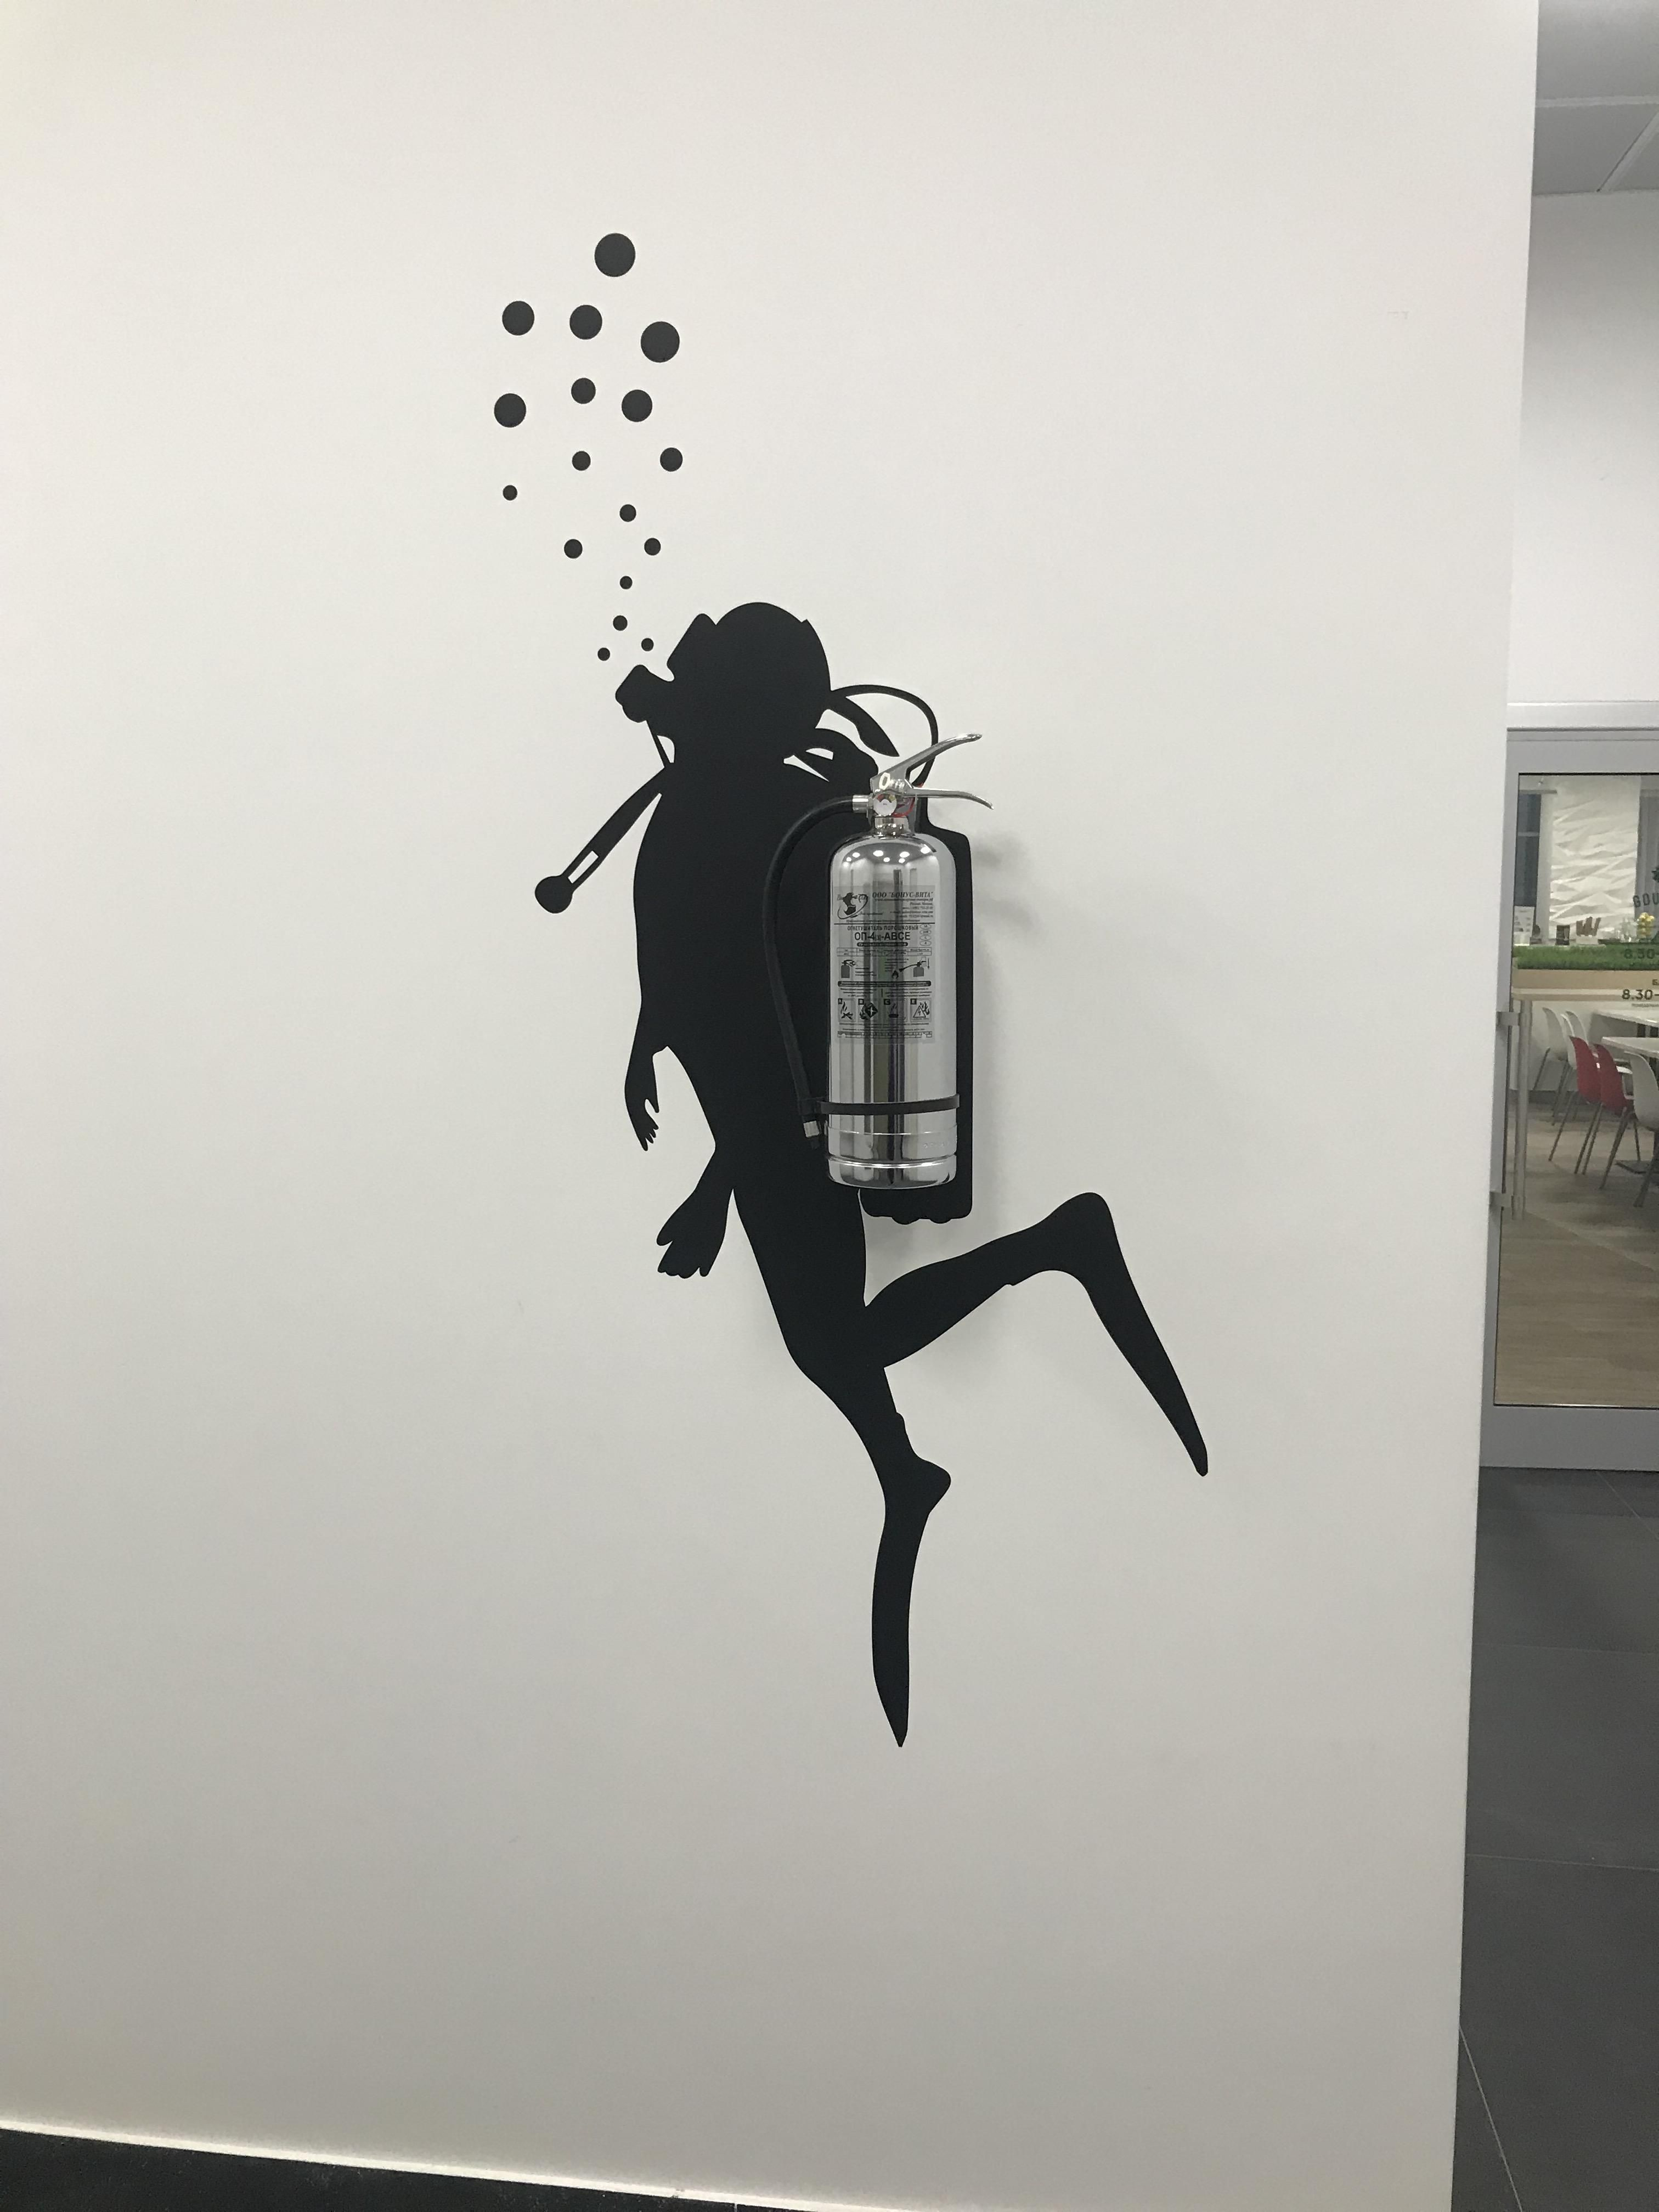 This fire extinguisher wall decal that looks like scuba